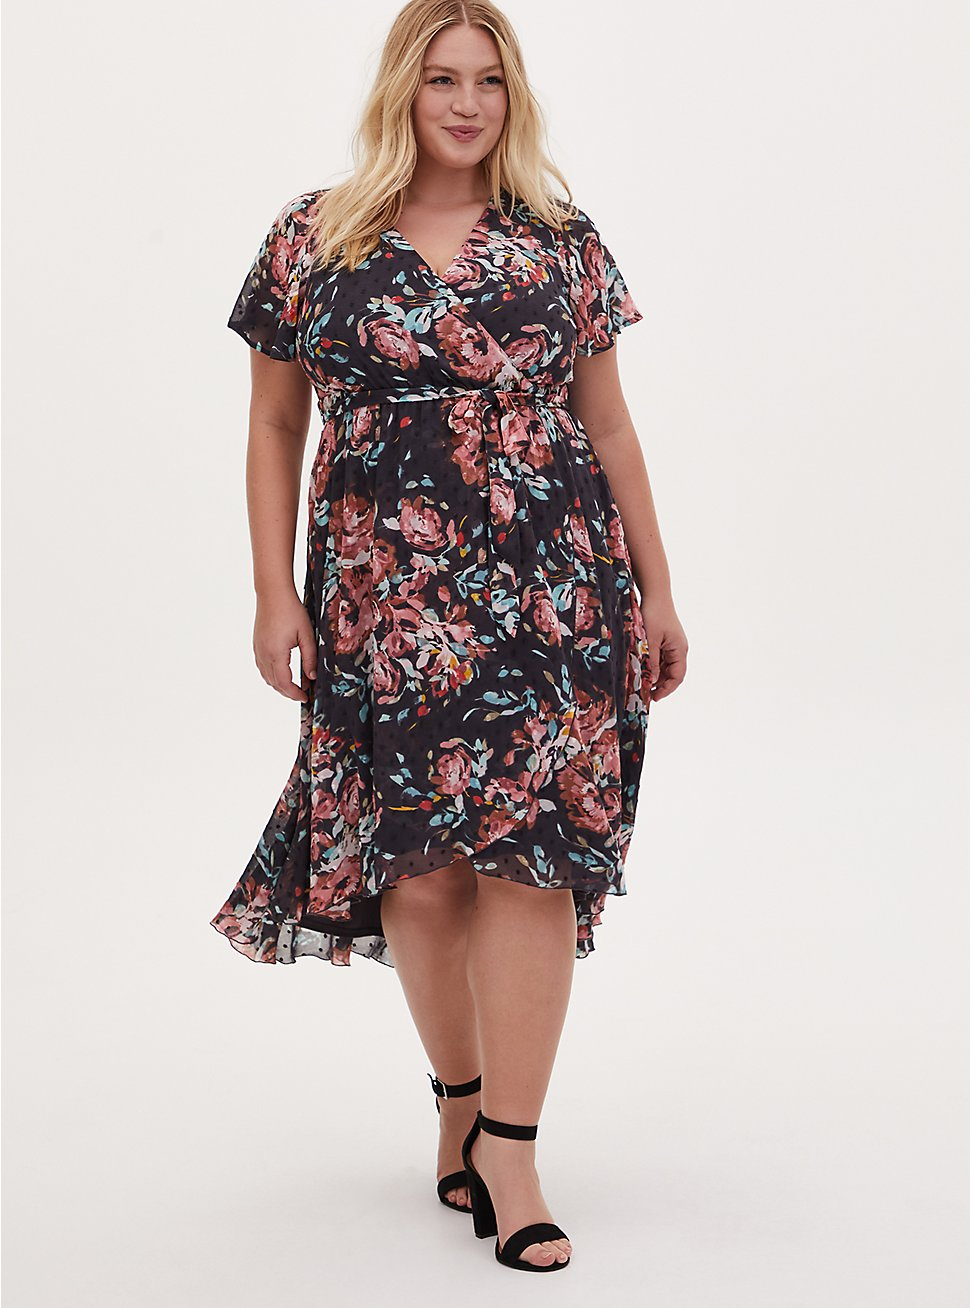 Faux Wrap Dress - Swiss Dot Floral Dark Grey, , hi-res